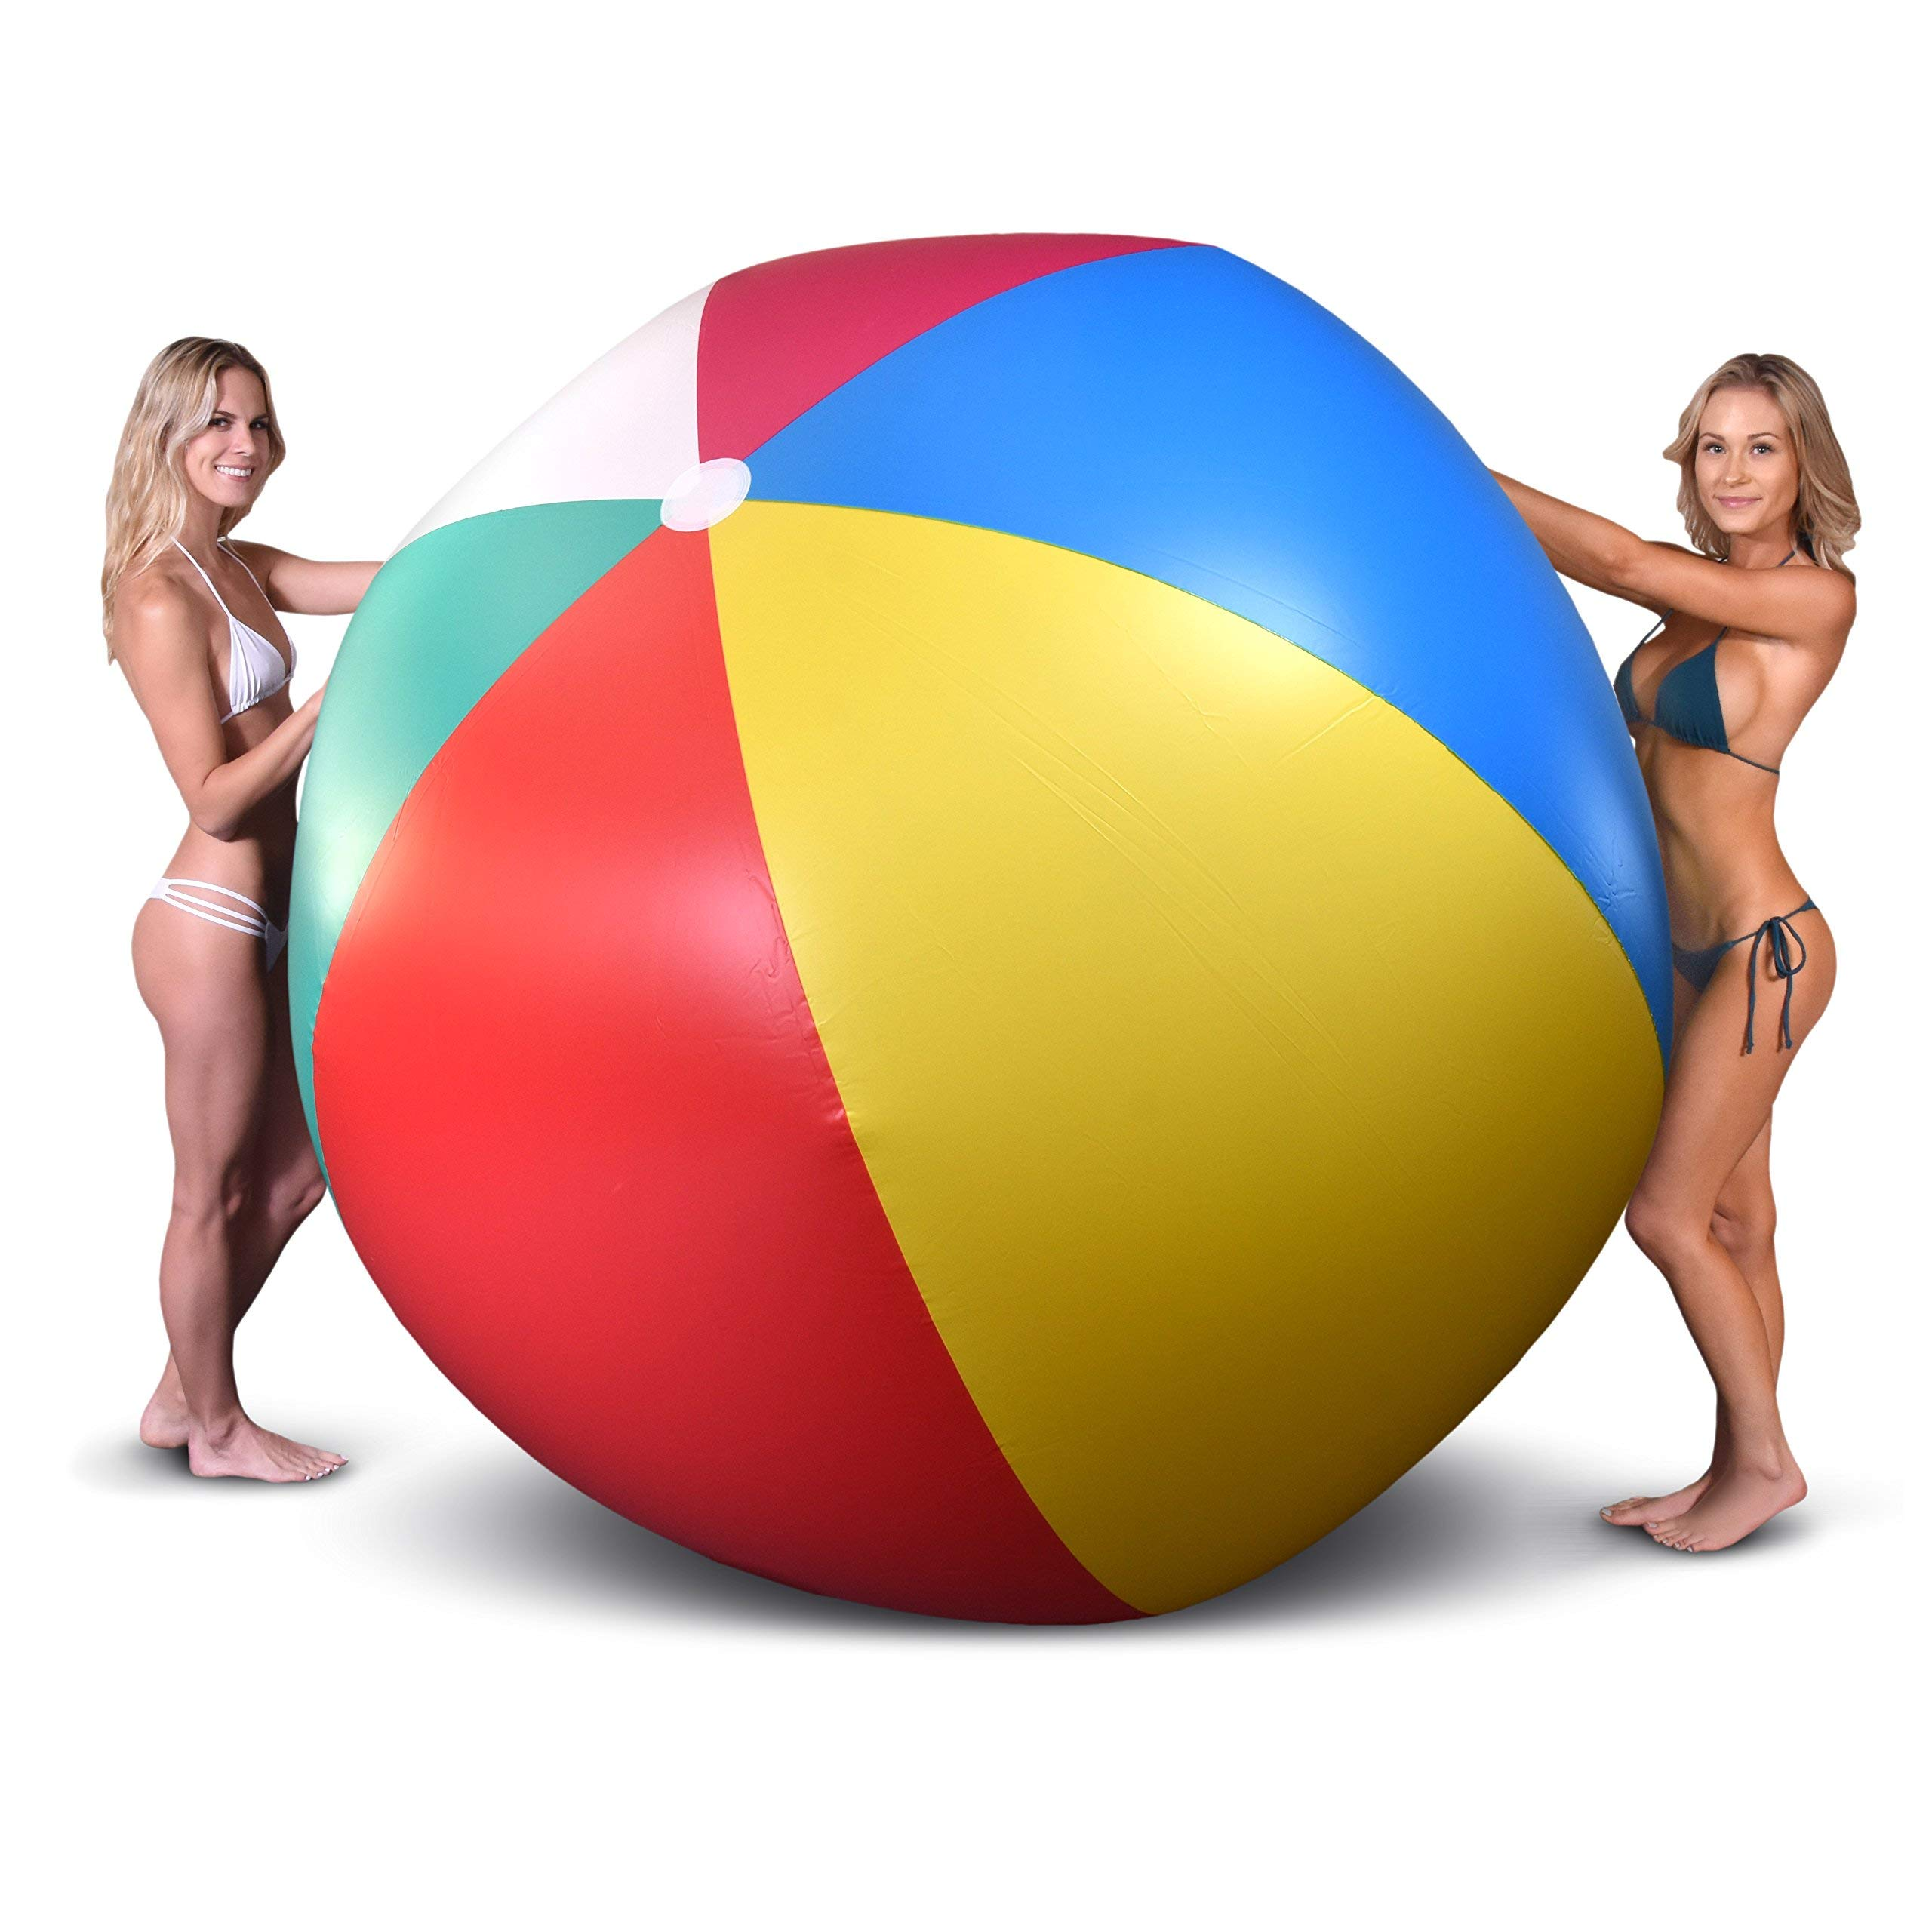 GoFloats 6 Giant Inflatable Beach Ball, Extra Large Jumbo Beach Ball | Patch Kit Included (Renewed)